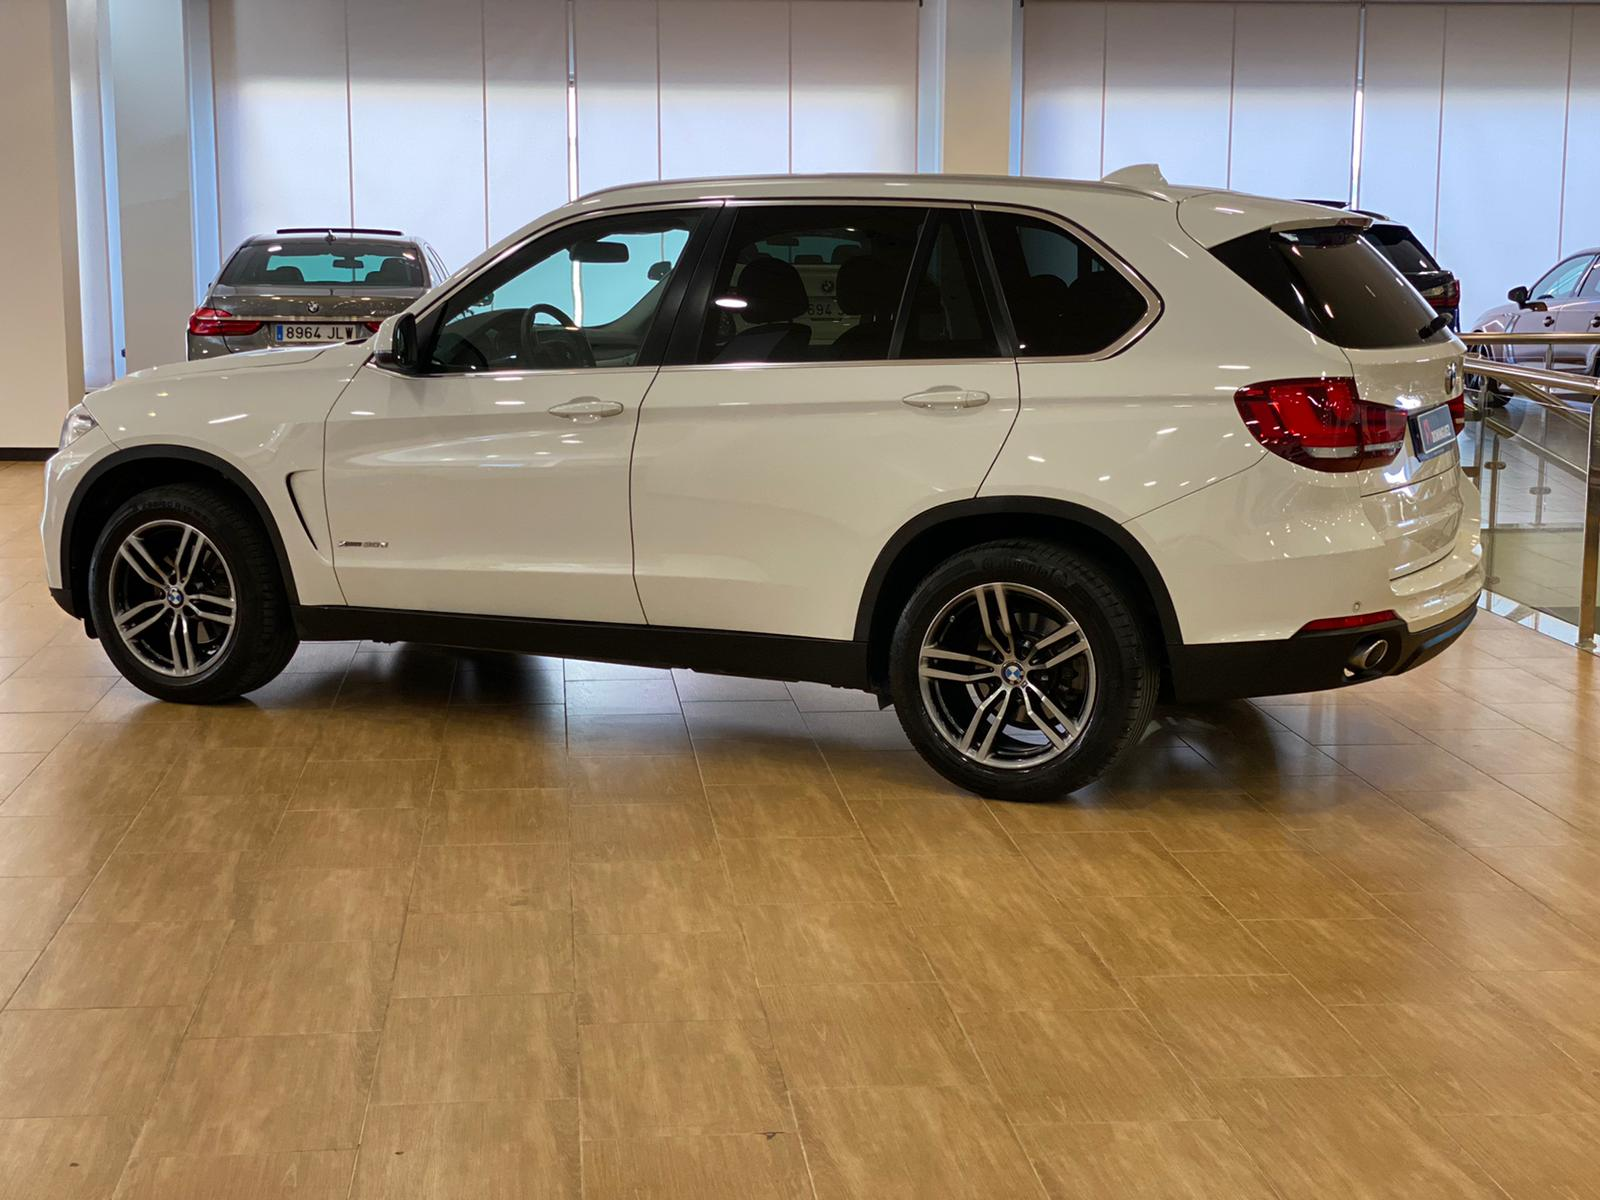 BMW X5 XDRIVE 30dA 258 CV 7 PLAZAS